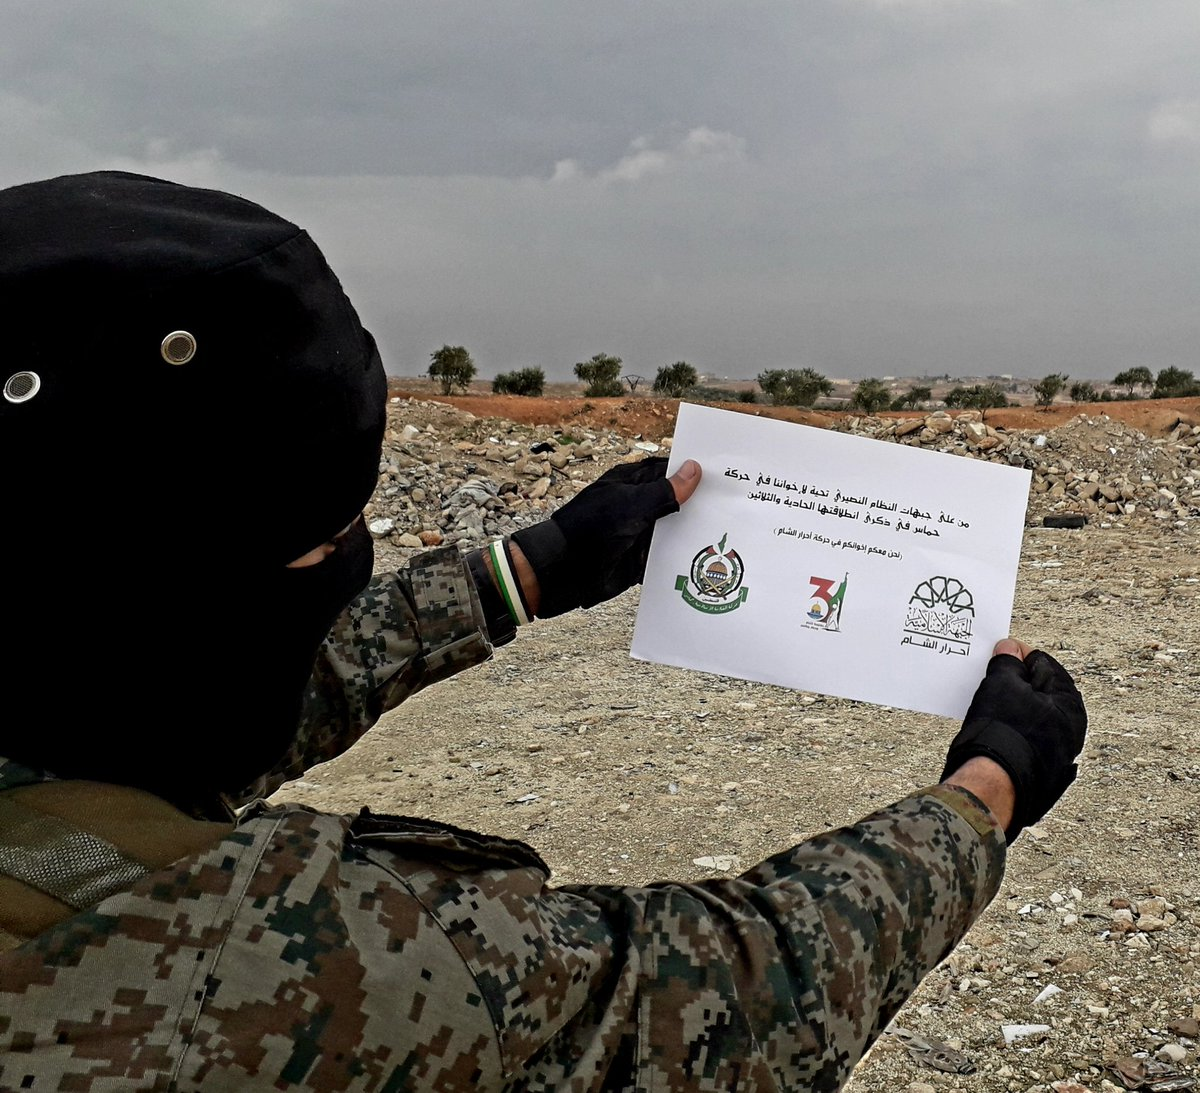 Hamas Members Appear To Be Operating Alongside Terrorists In Northern Syria